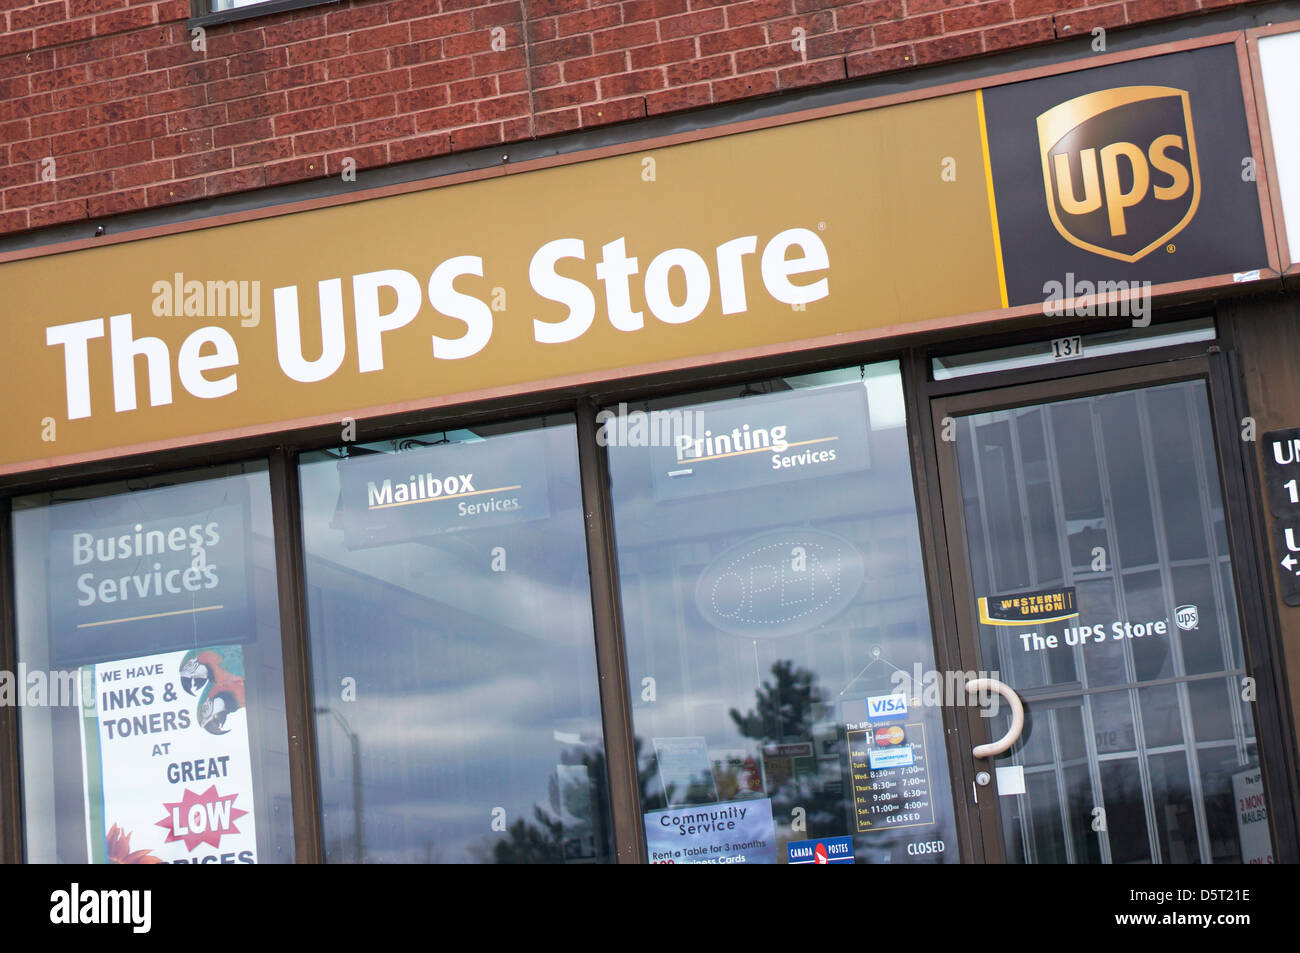 UPS United Parcel Service Store Photo Stock